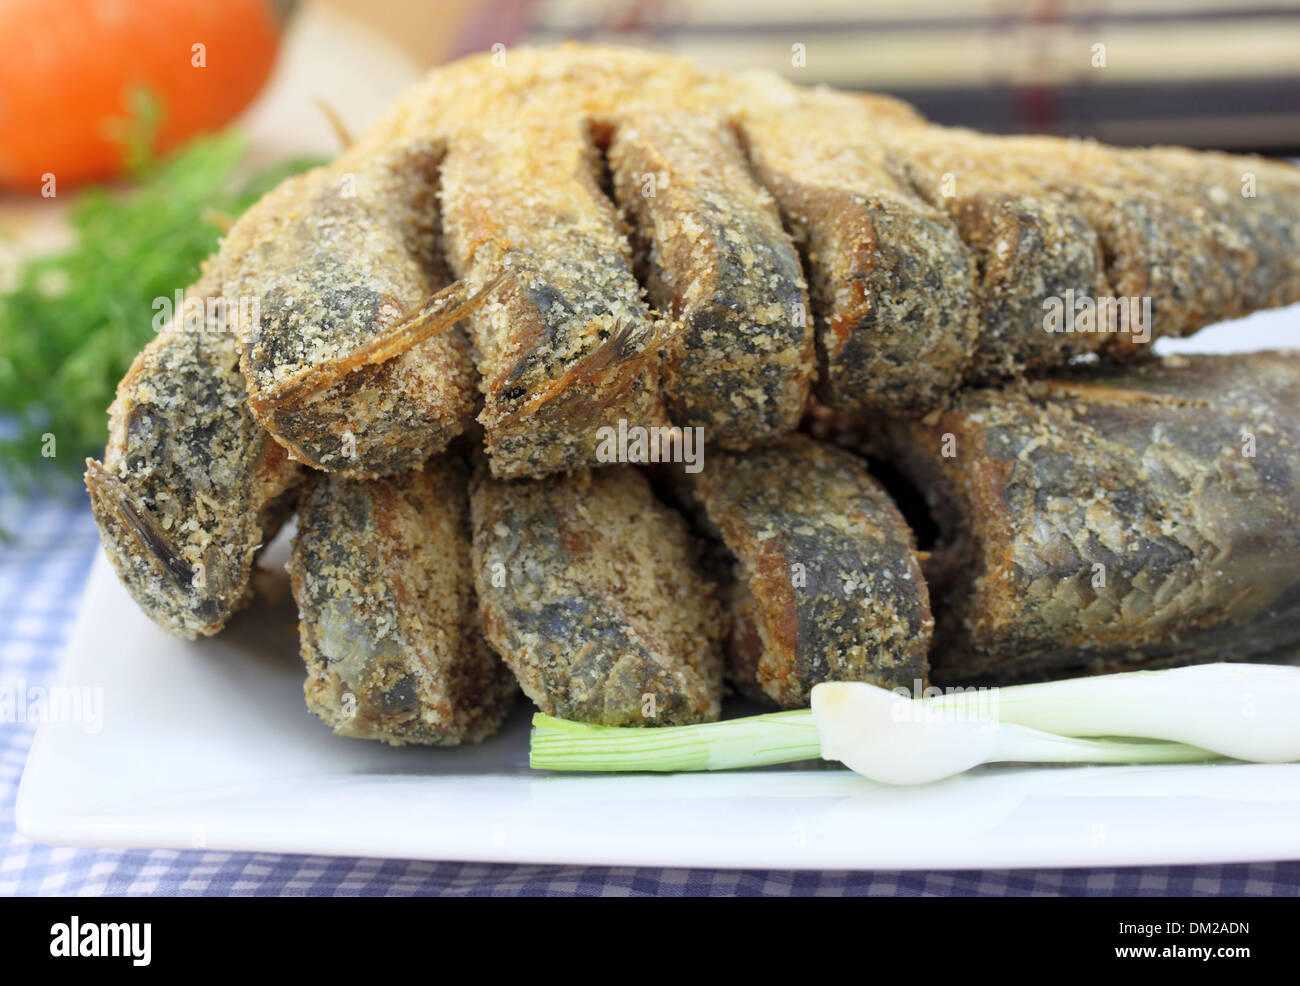 Uncooked preserved Ilish fish of Southeast Asia - Stock Image